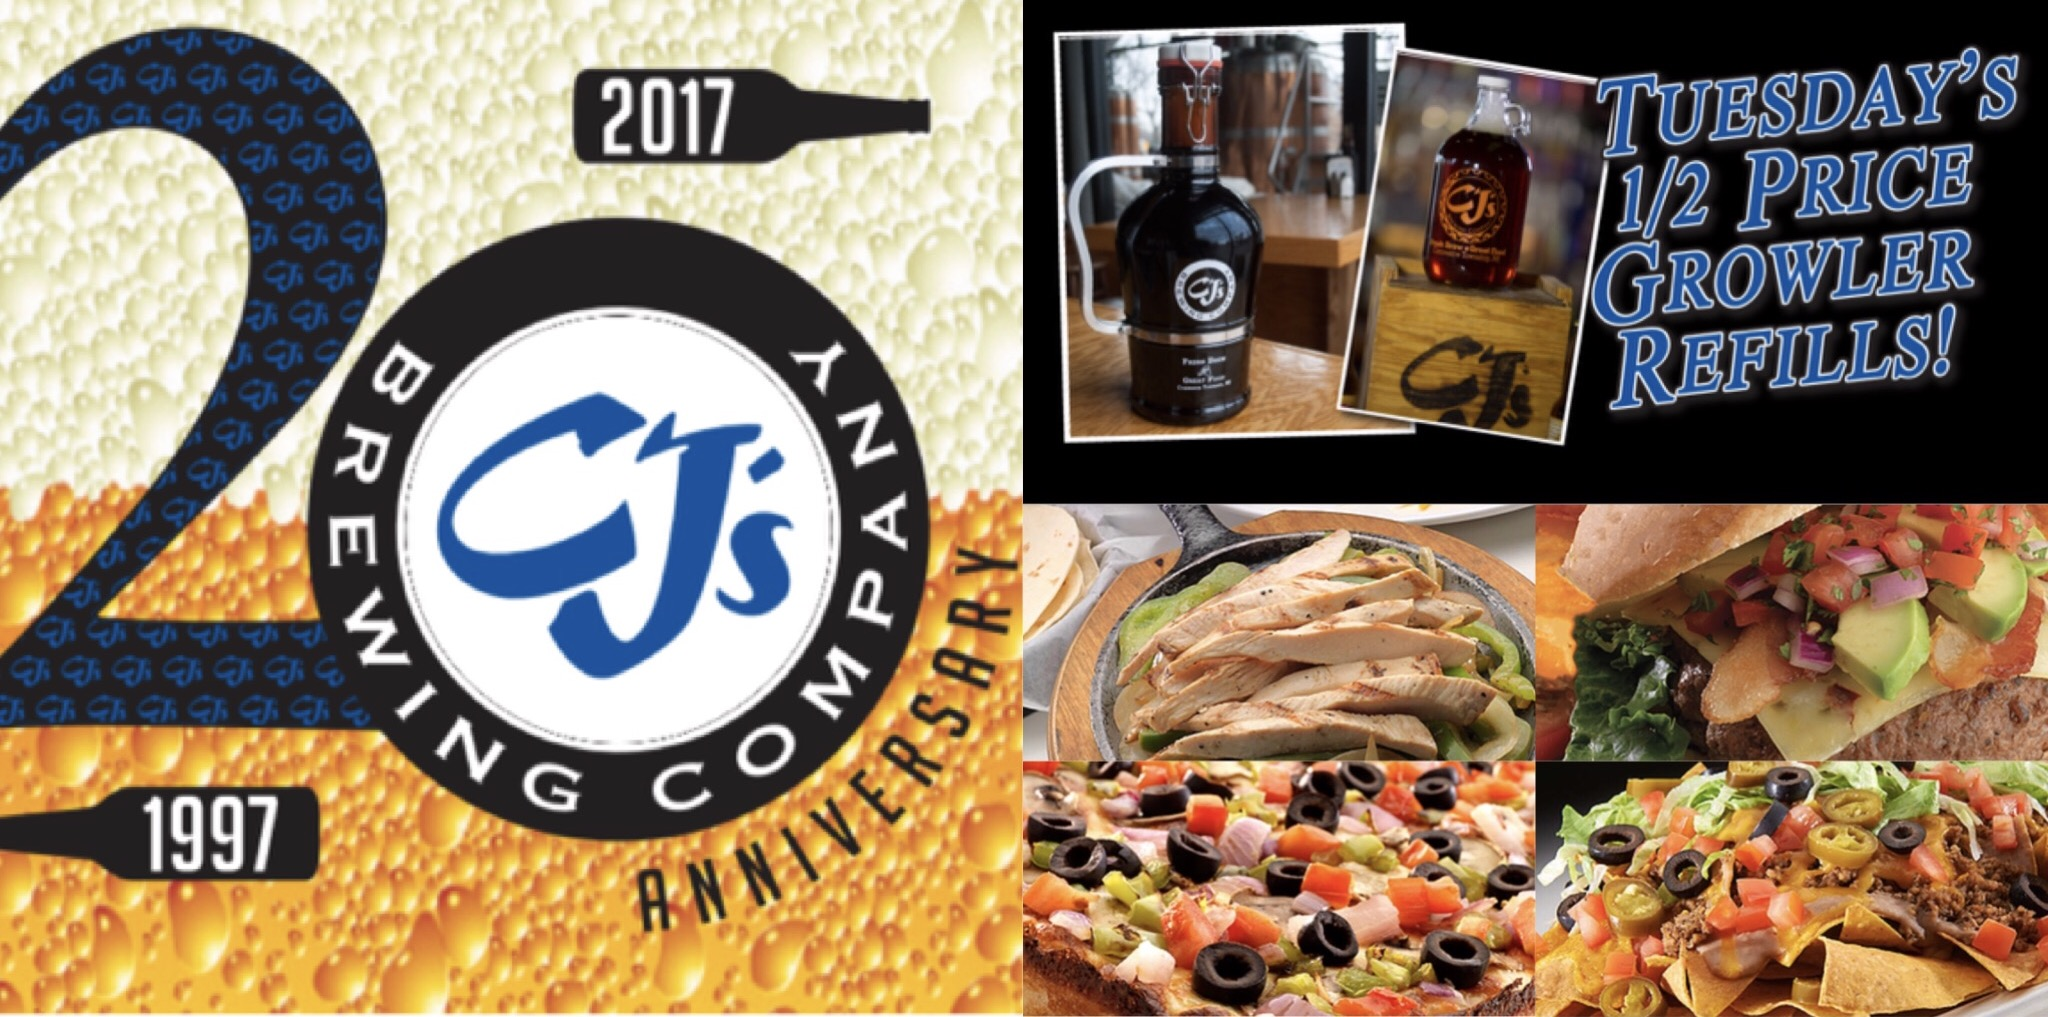 CJs Brewing Company | Detroit